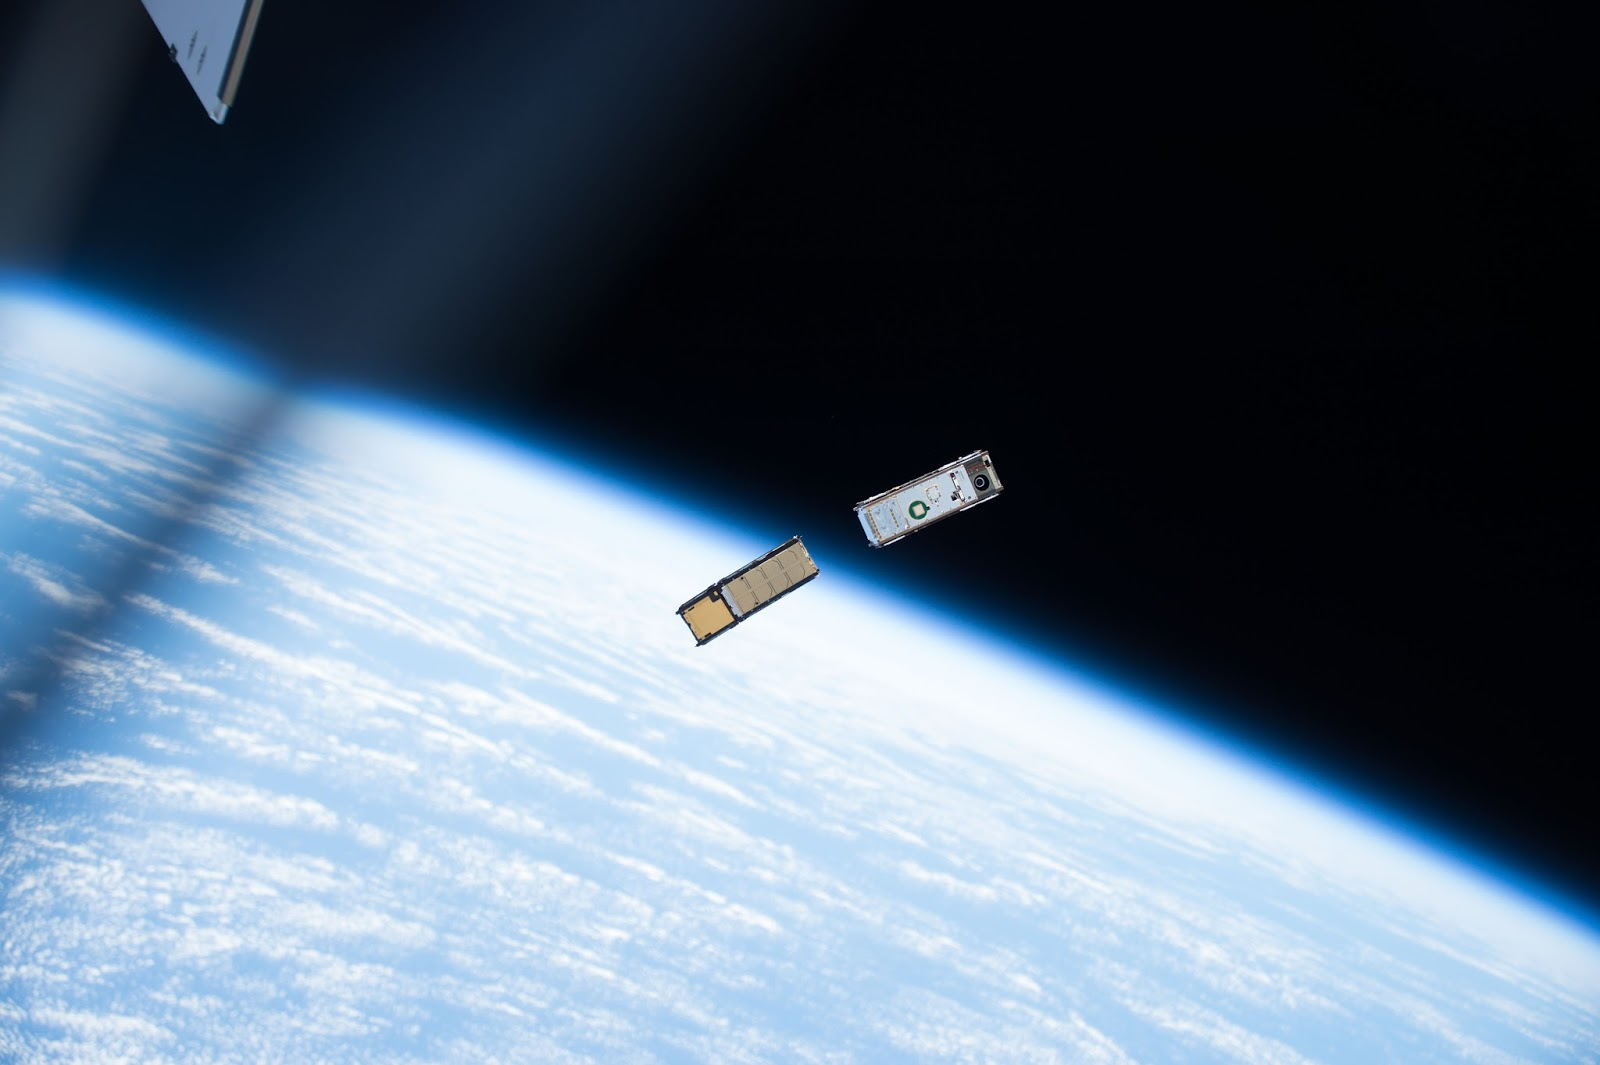 Tiny CubeSats are making space more accessible for study